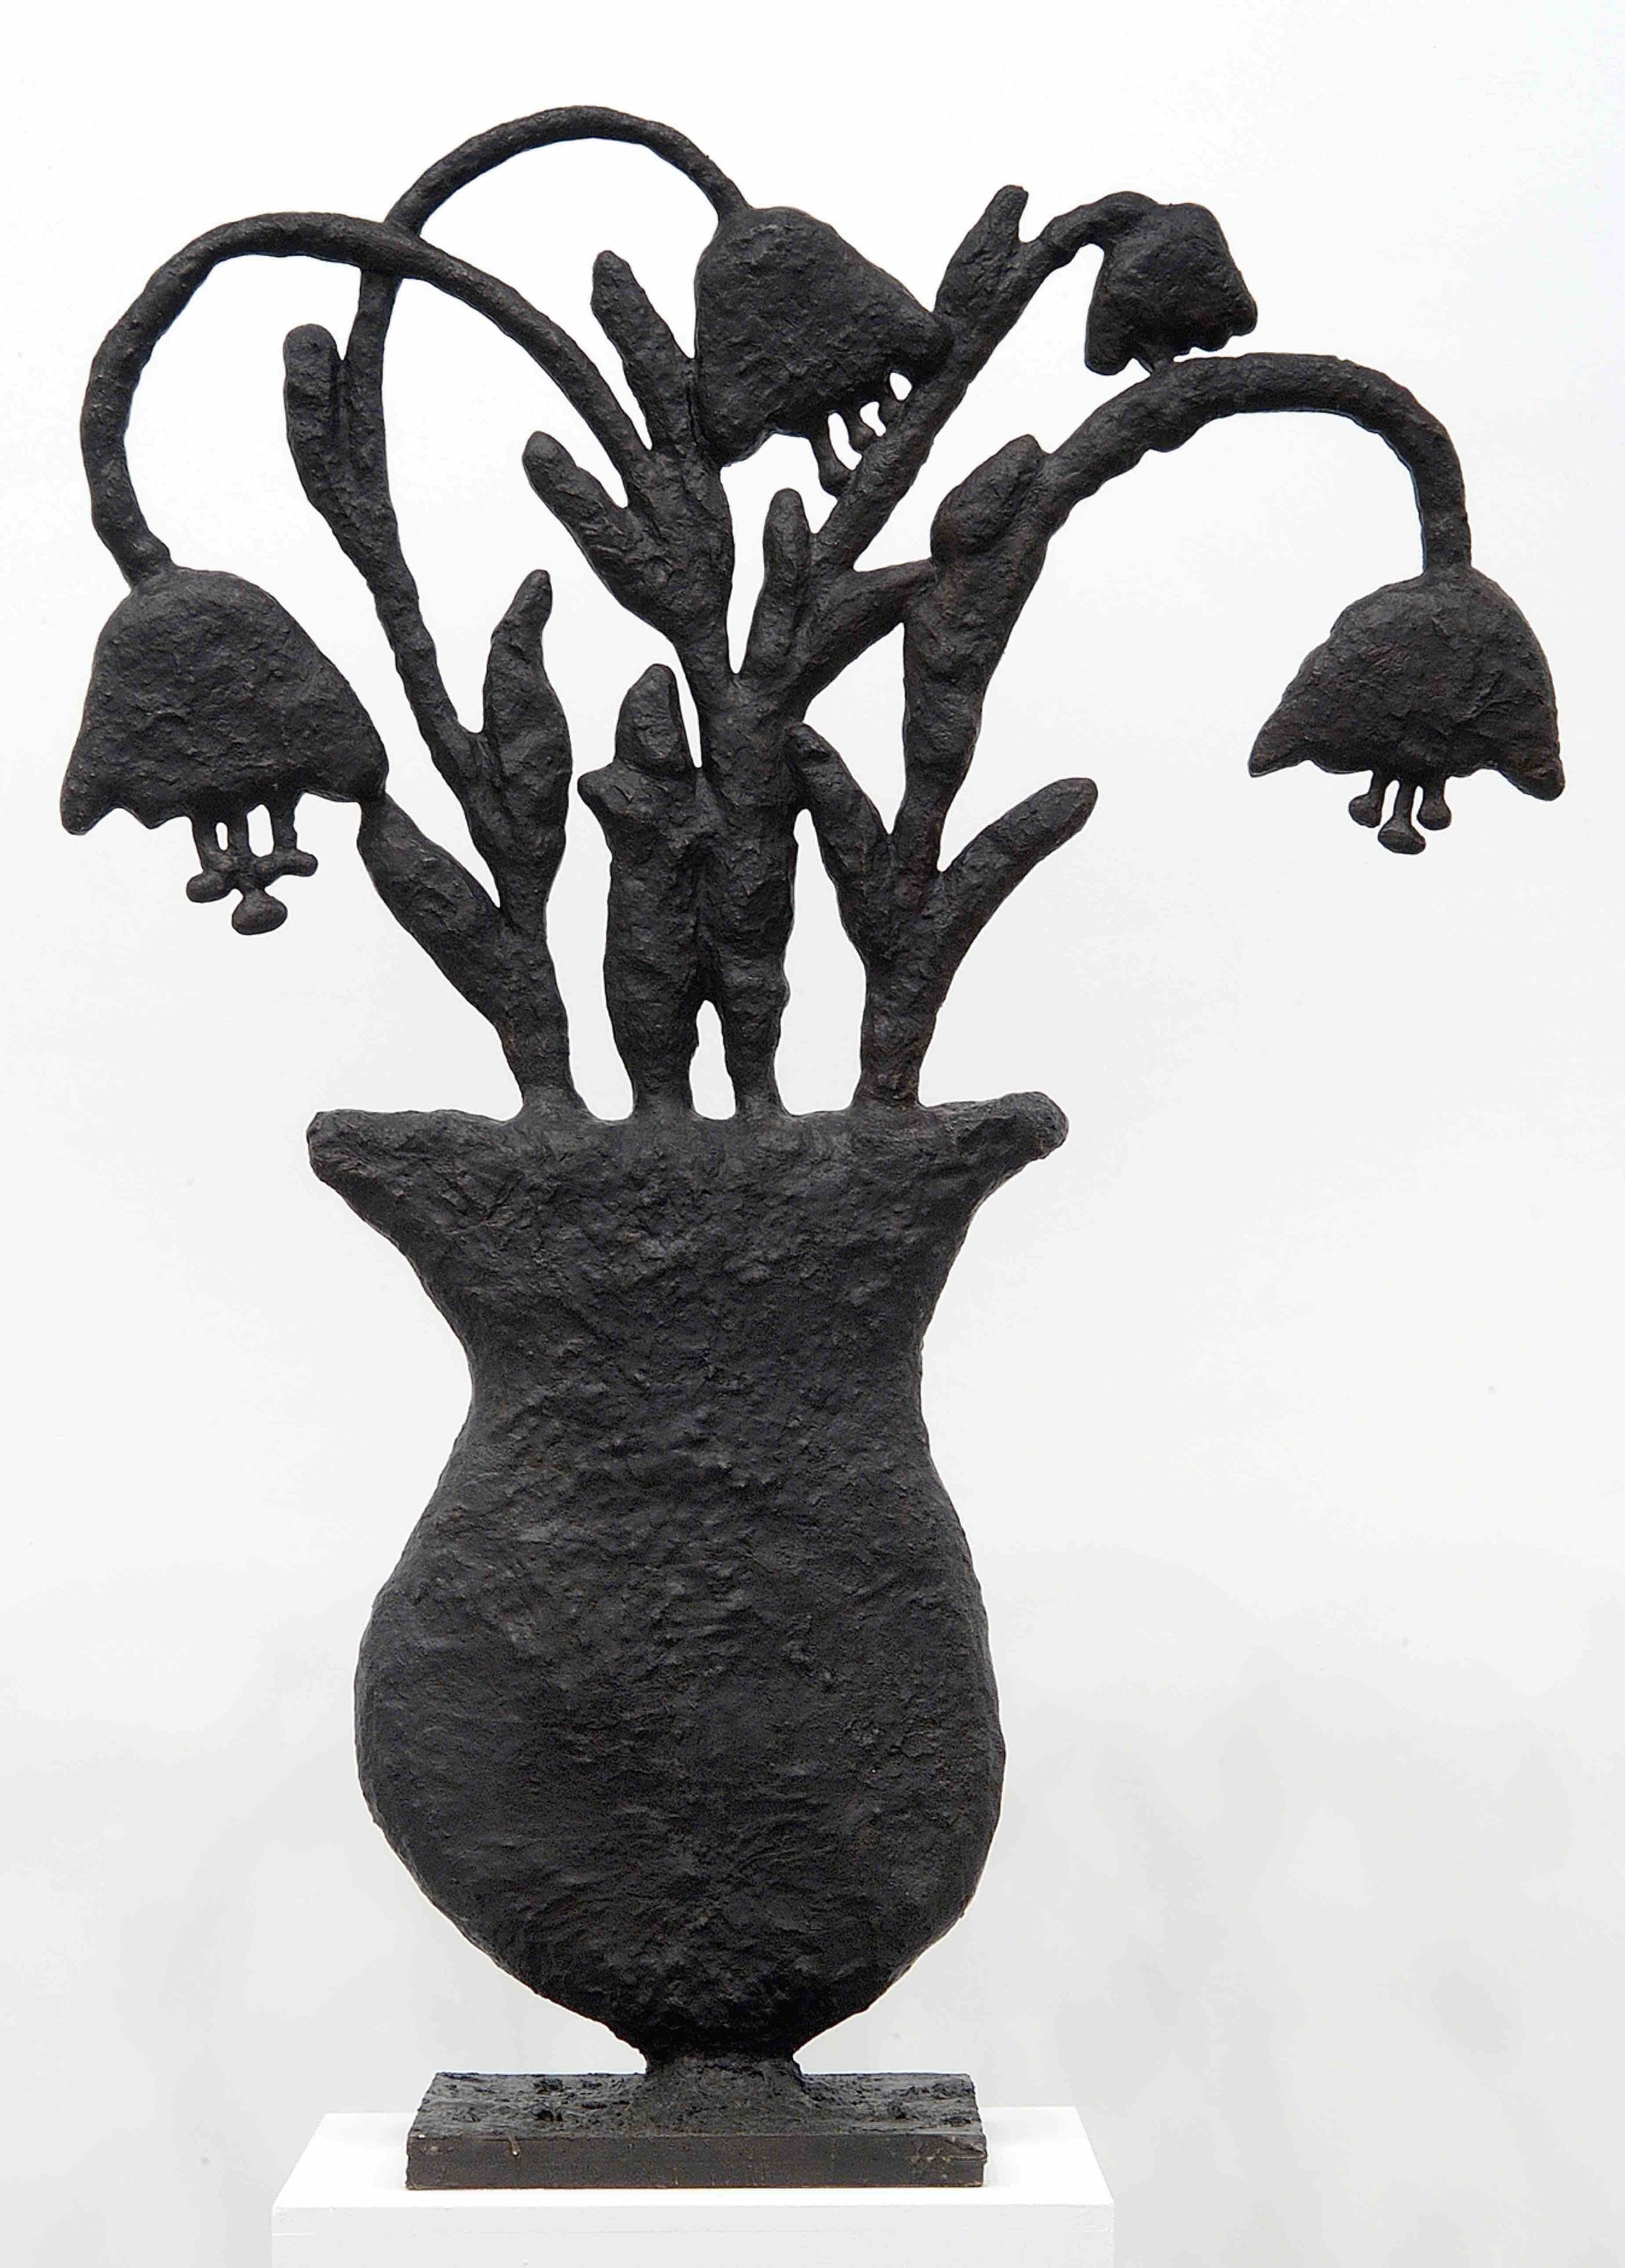 Donald Baechler   Untitled (Flowers)   2003-04  cast bronze  63.5 x 45.5 x 17 in / 161 x 116 x 43 cm  Edition of 8 + 2 APs